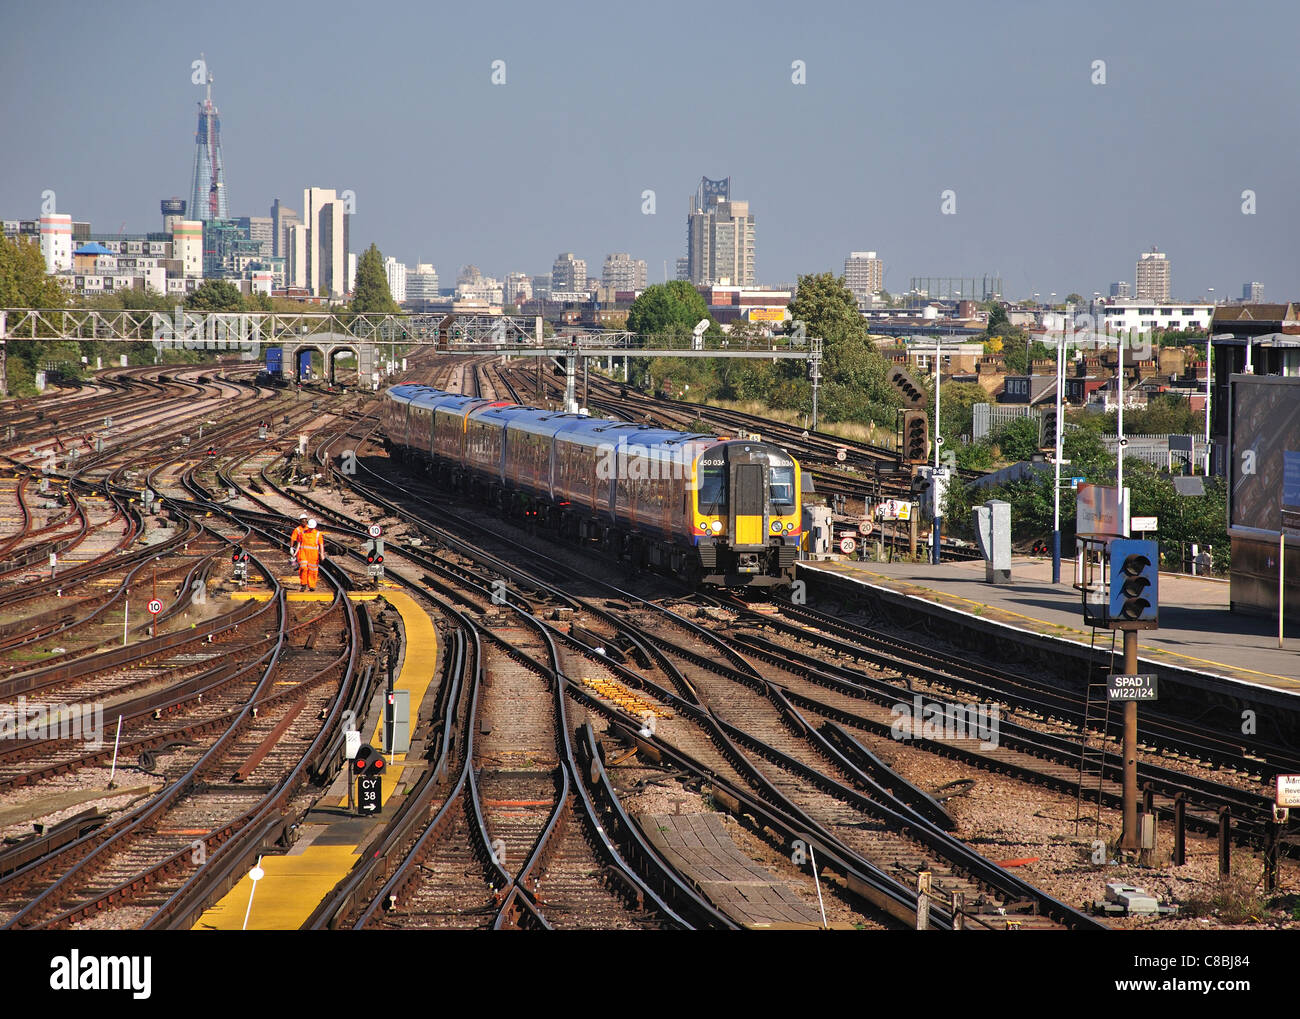 Clapham junction station